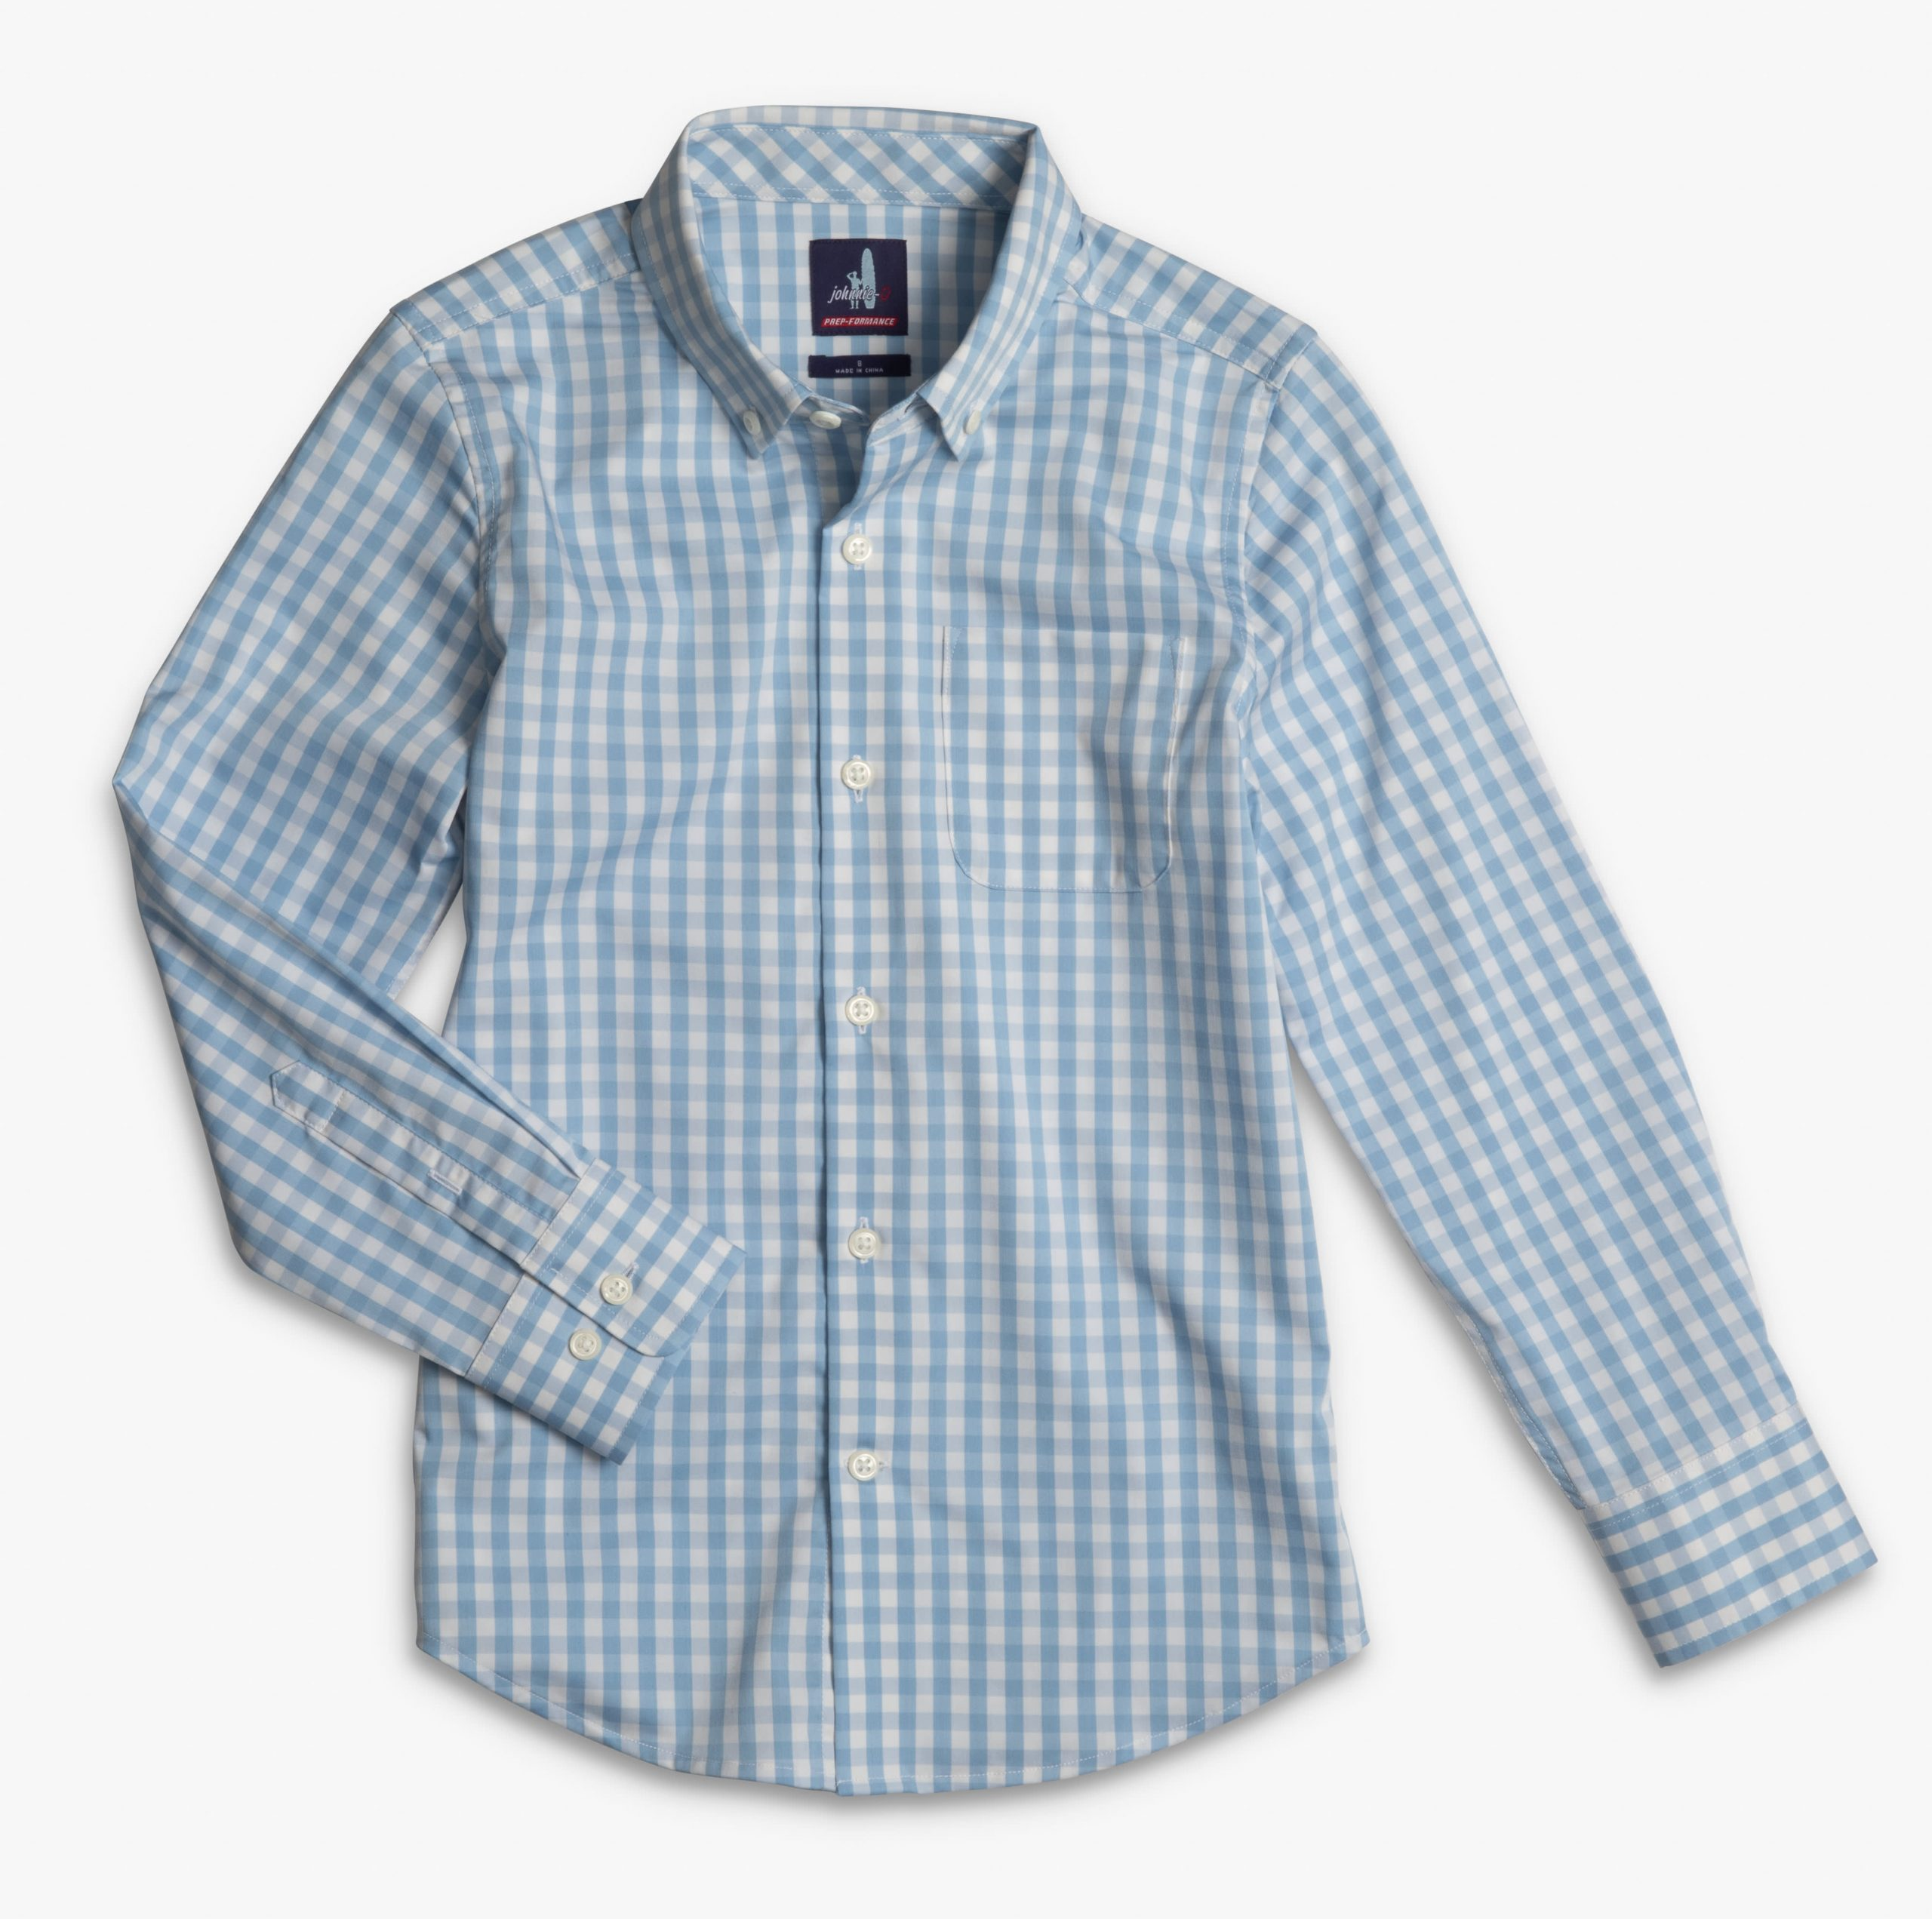 CHET JR BUTTON DOWN SHIRT